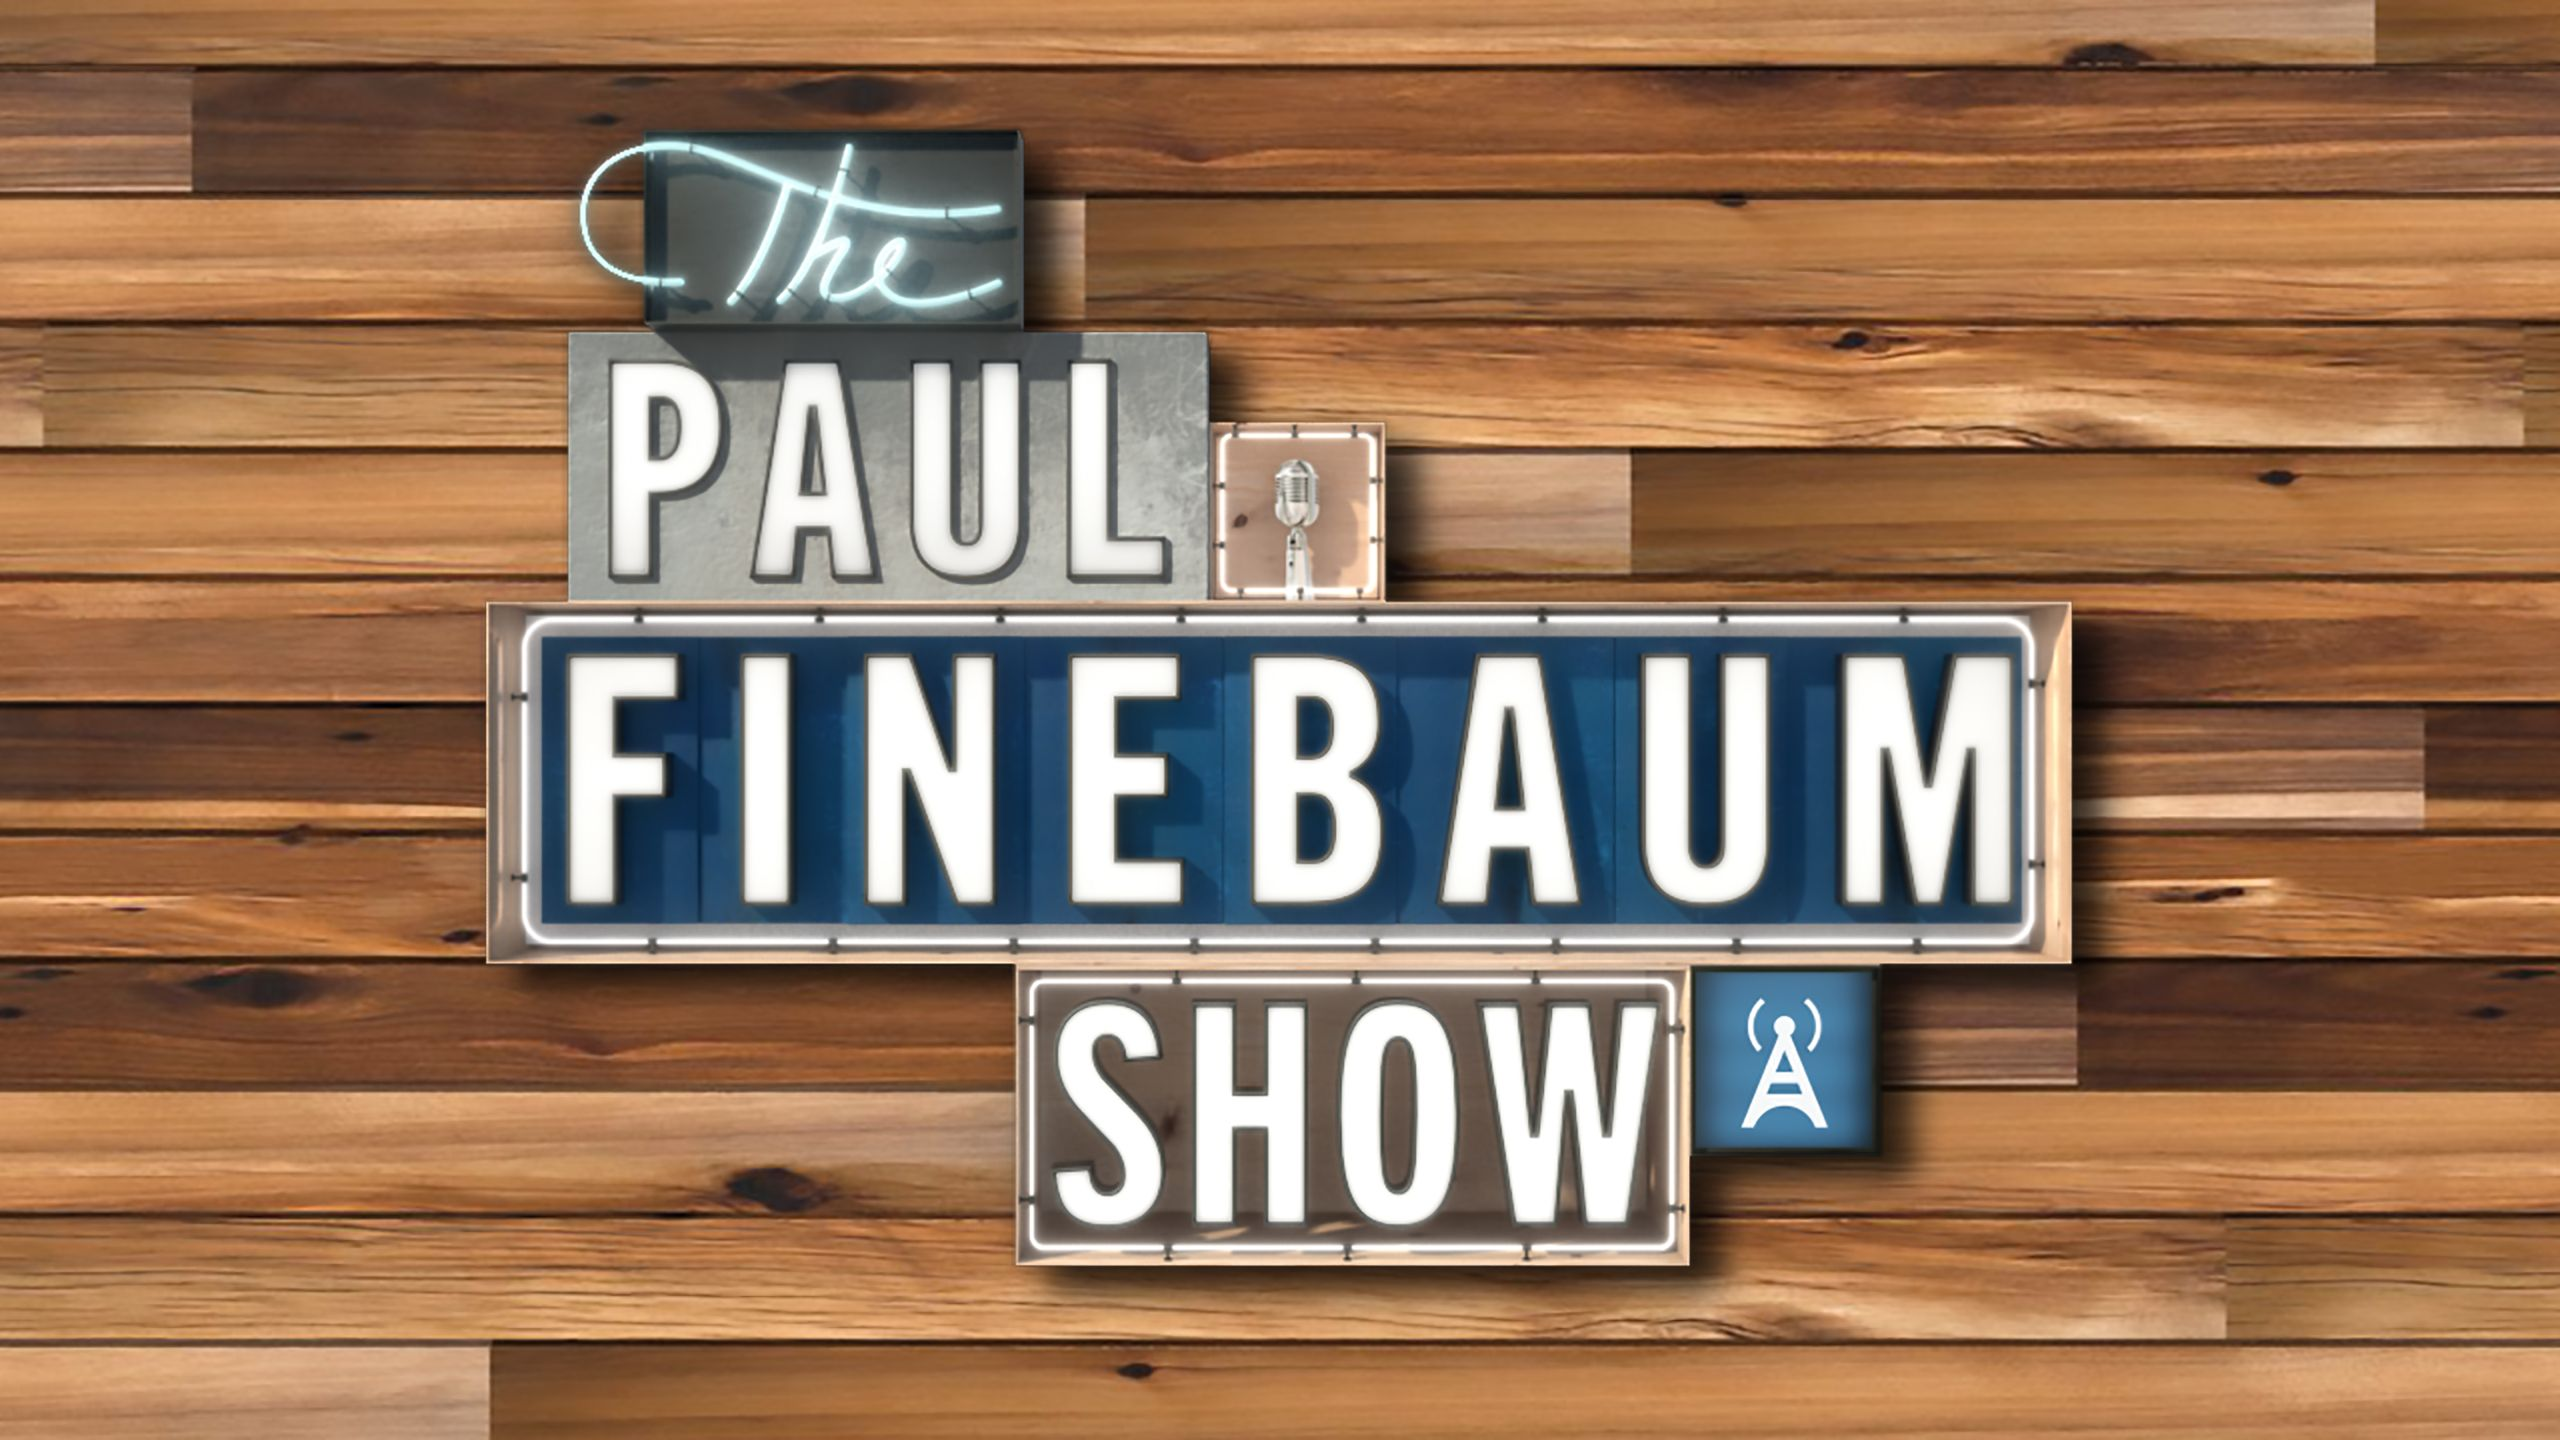 Mon, 10/16 - The Paul Finebaum Show Presented by Regions Bank